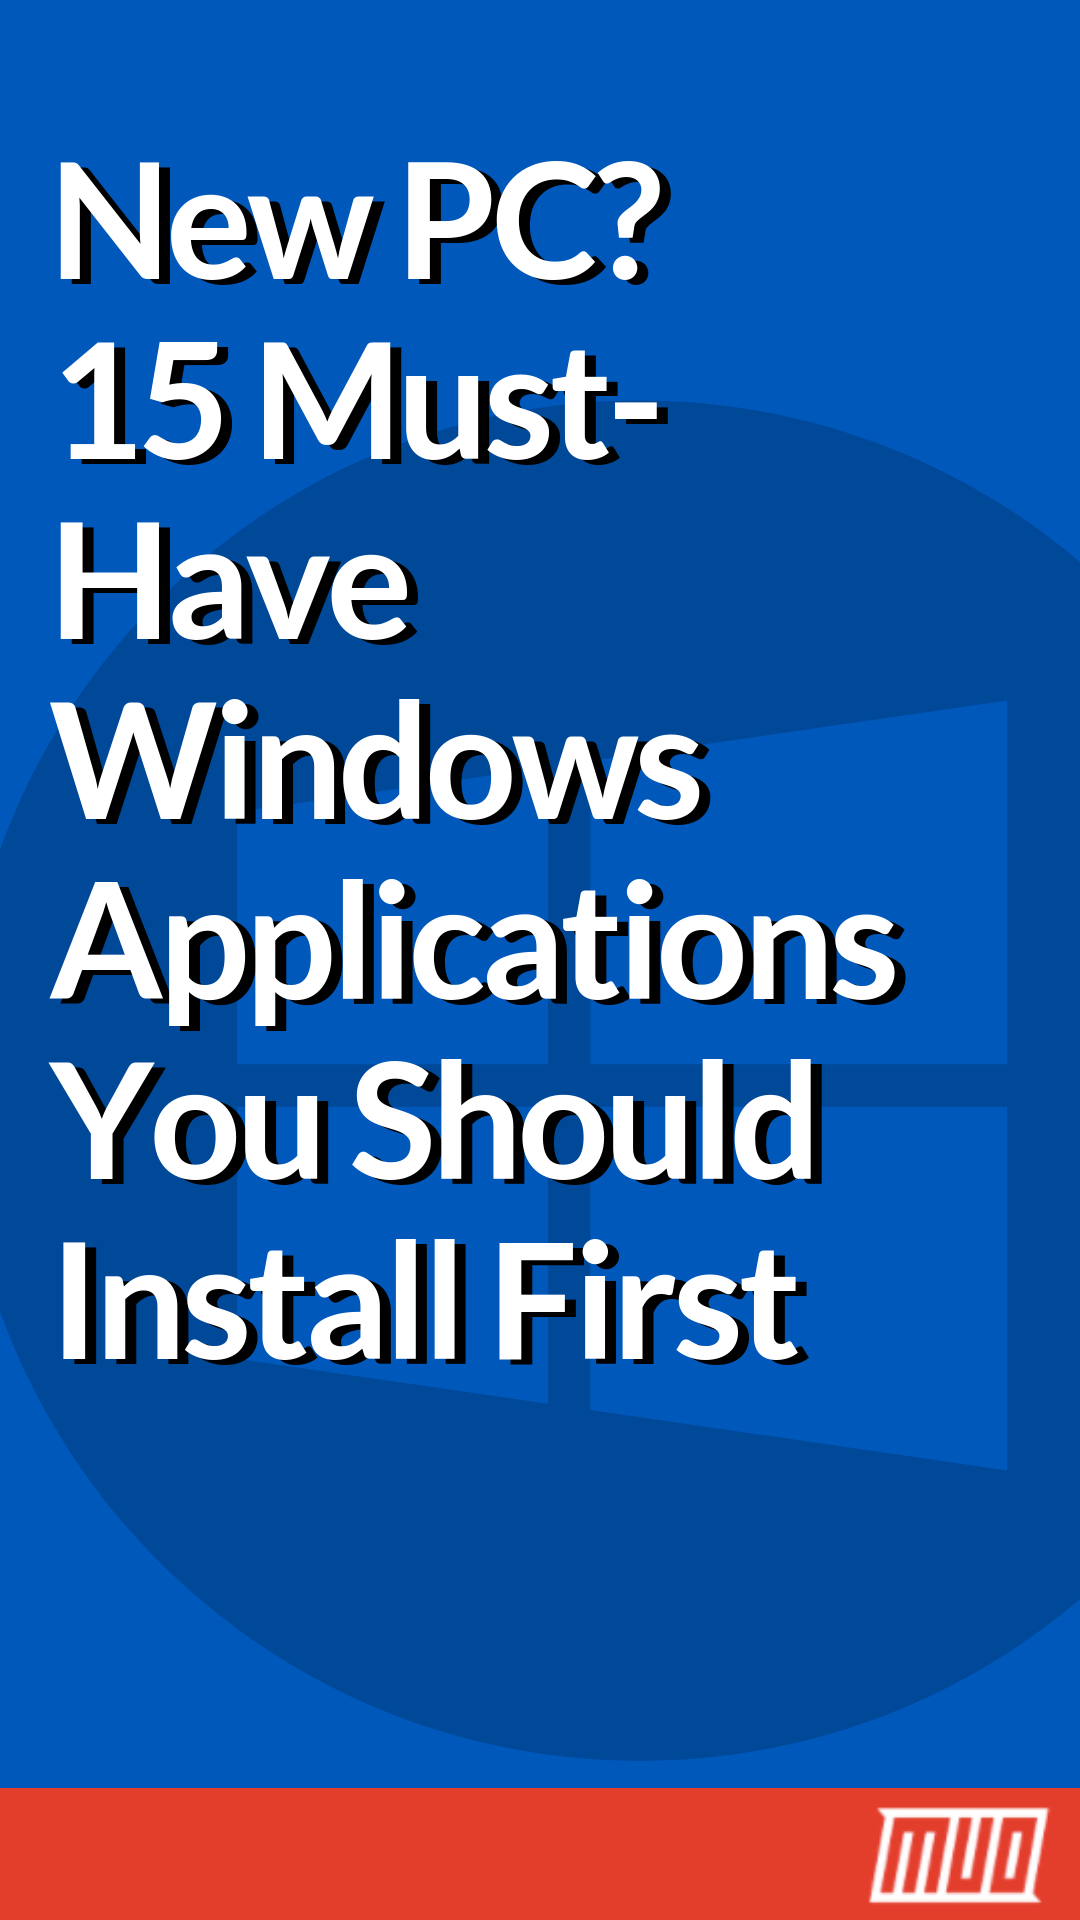 New PC? 15 MustHave Windows Applications You Should